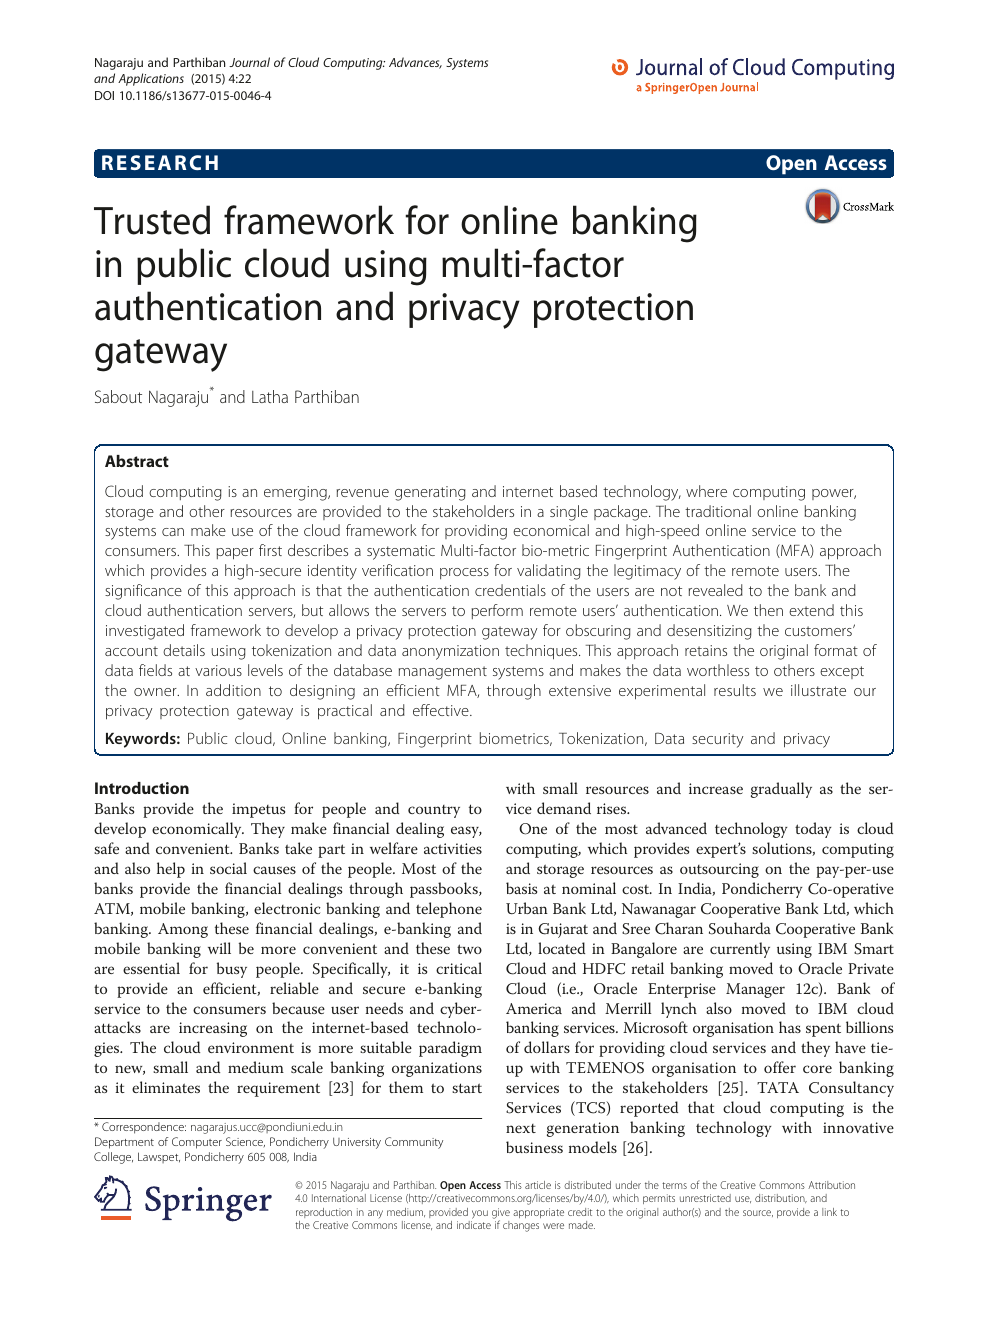 Trusted framework for online banking in public cloud using